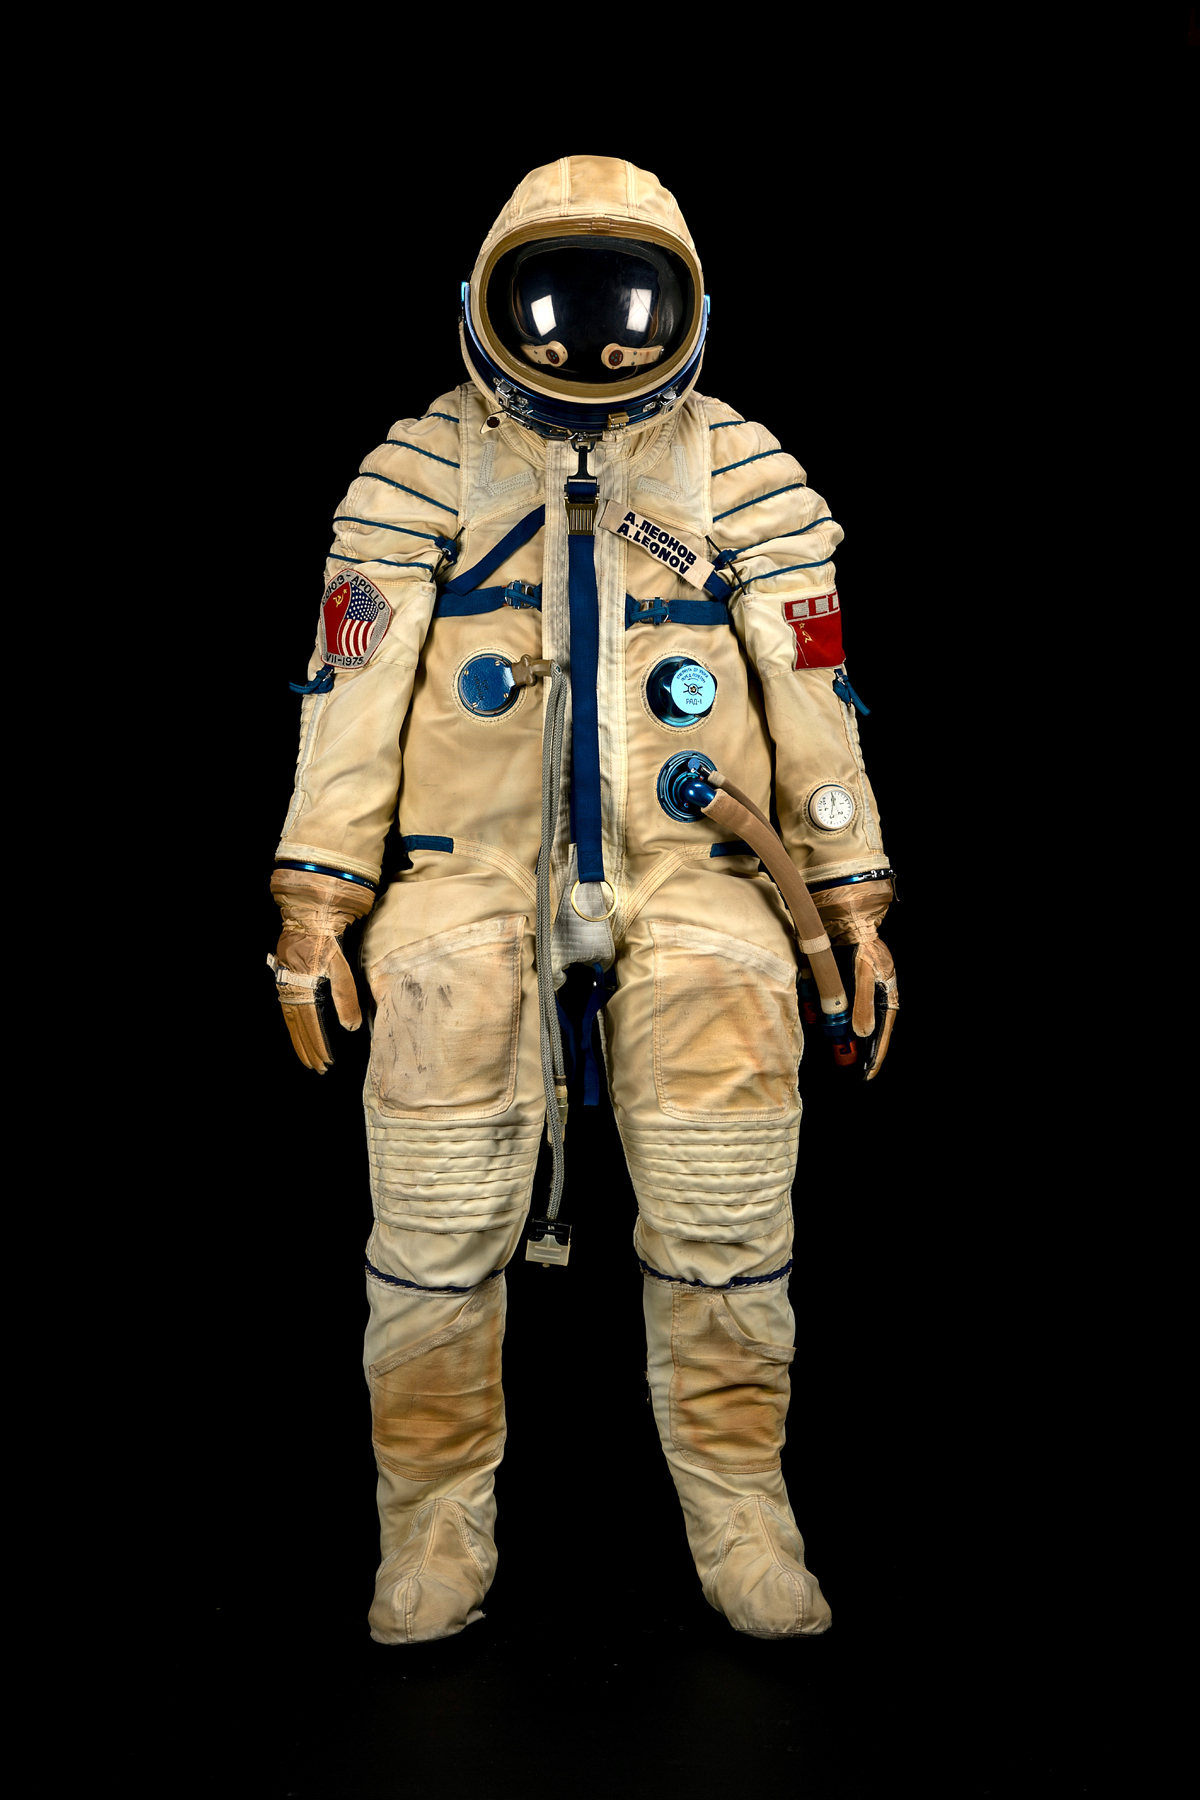 Apollo-Soyuz Test Project Spacesuit